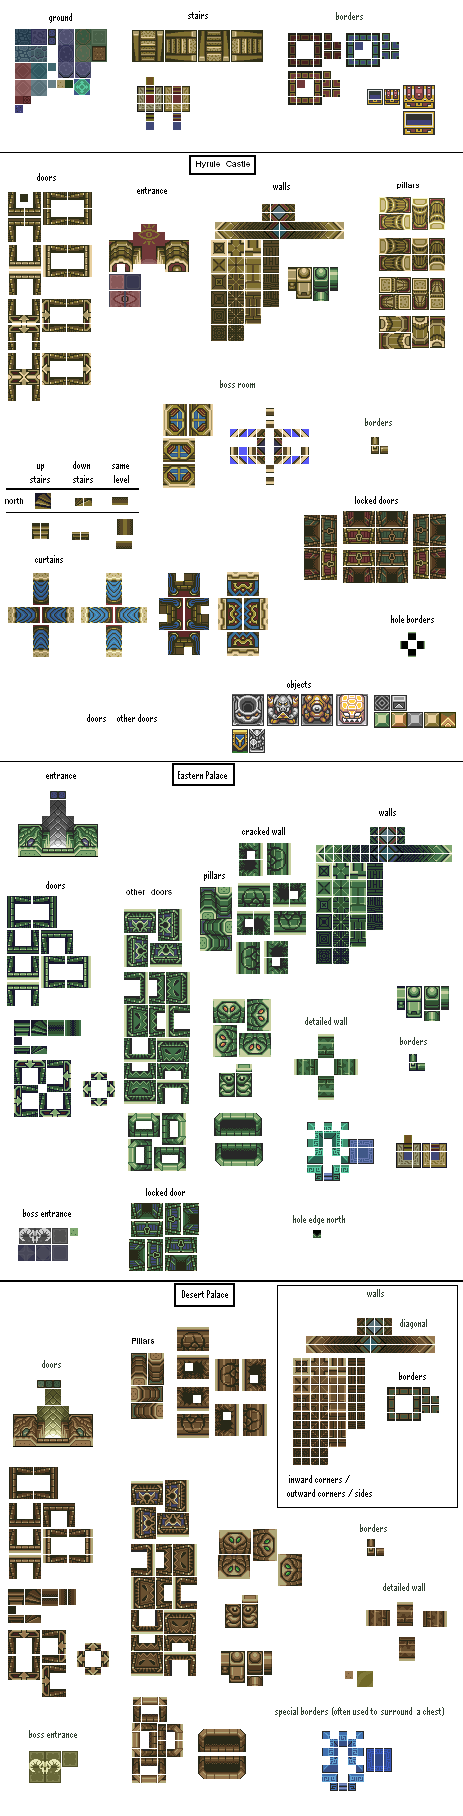 16X16 Tileset a guide to the zelda alttp art-style (tiling) - oot 2d forums